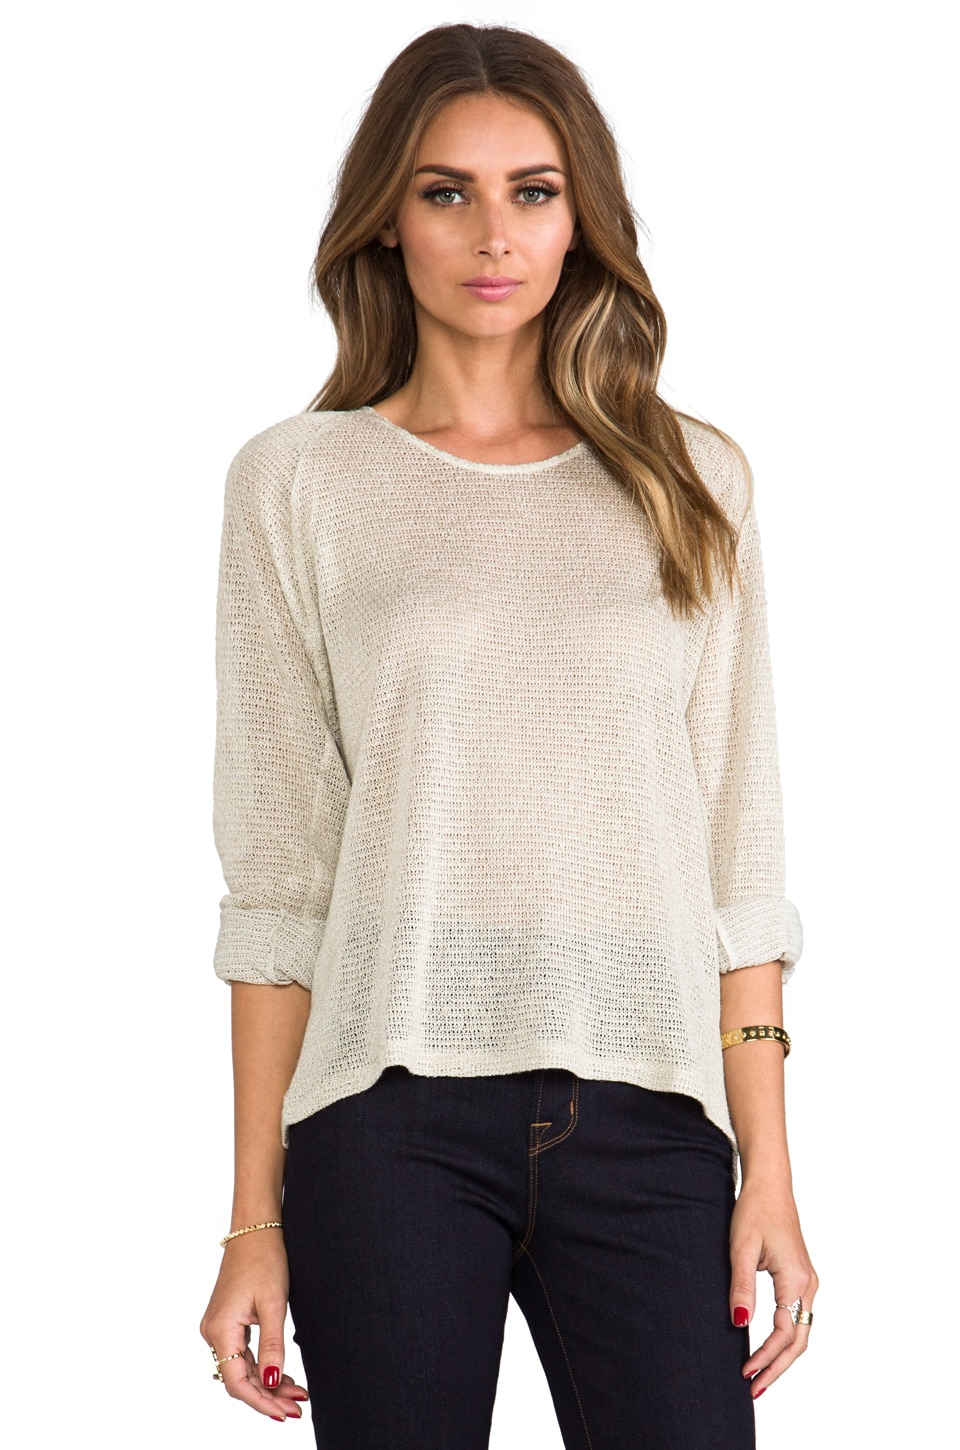 David Michael Sweater G in Sand Knit